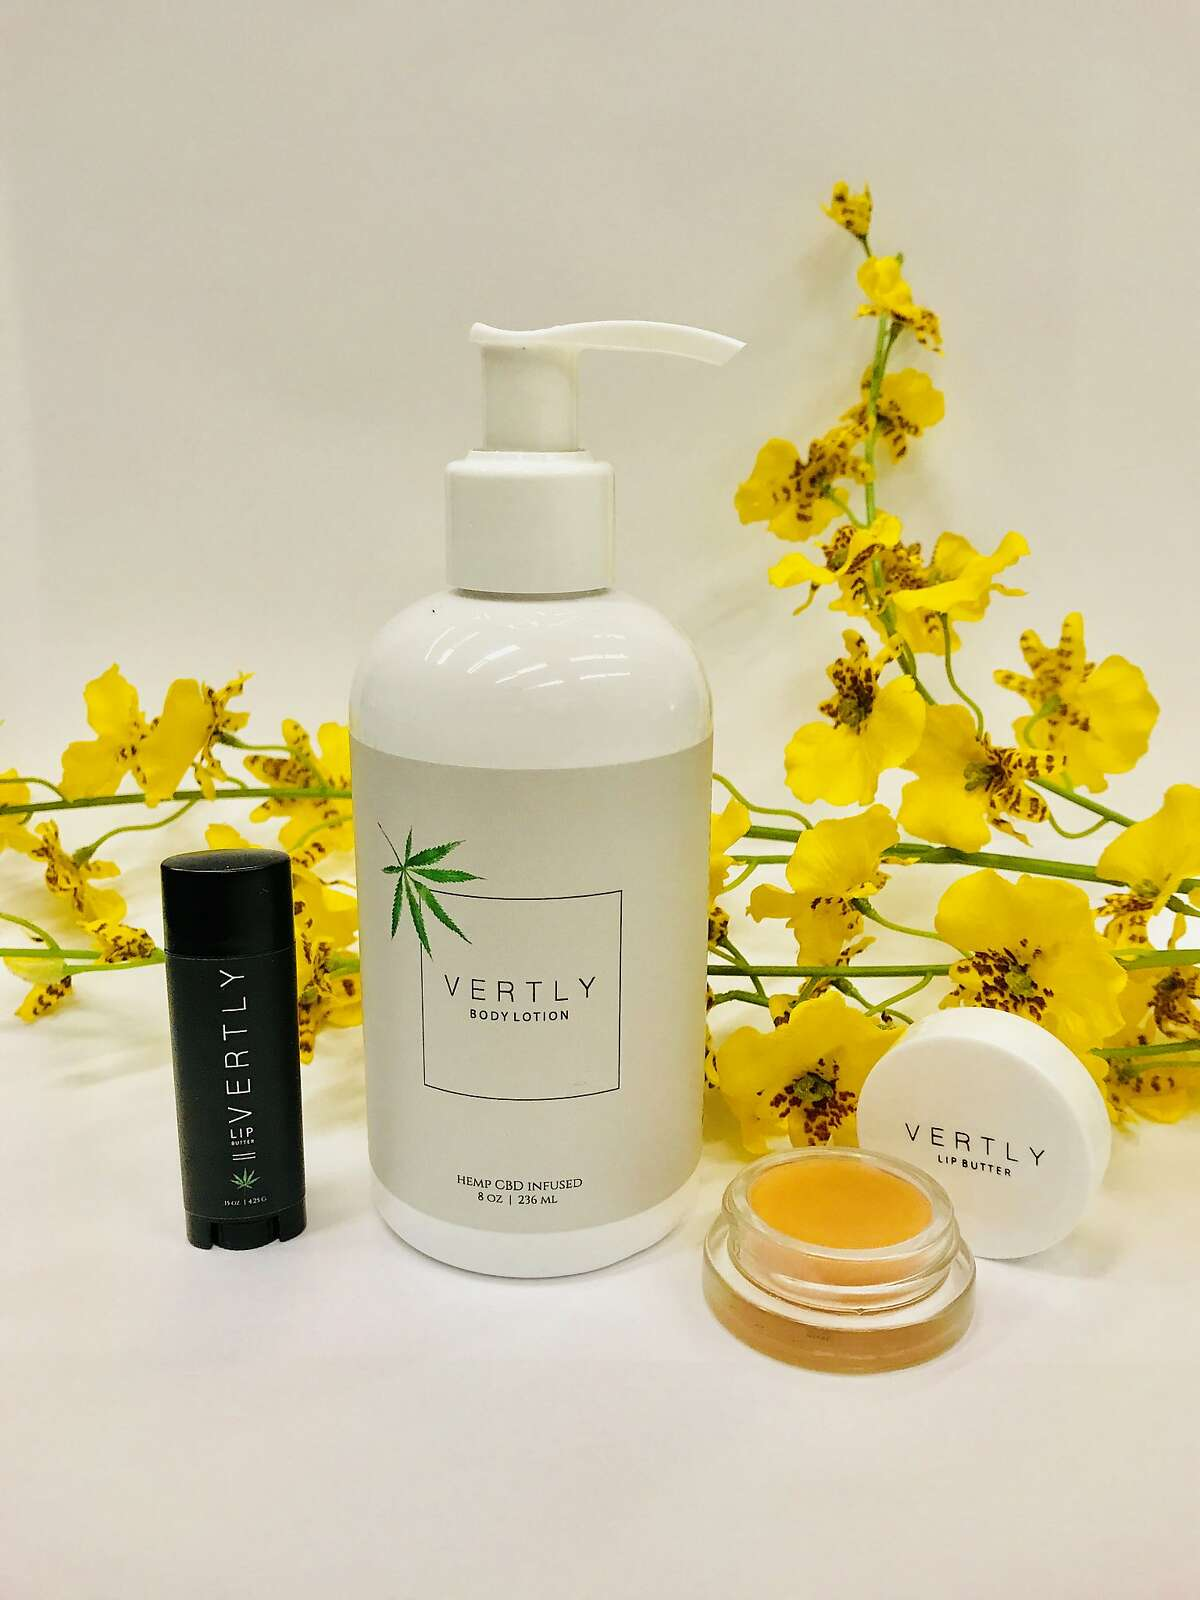 Claudia Mata and Zander Gladish launched Vertly, a plant-based lip balm� line in August 2017 with cannabis as an ingredient, and have added a lotion infused with CBD to the line. It debuts in February. Standard balms come in white packaging and are infused with sativa oil derived from the hemp seed, , while products in white packaging contain CBD, or cannabidiol, a hemp molecule with fatty acids and vitamins.� The rose-scented (and rose-colored)� jar of CBD lip balm retails for $22, at Hero Shop boutique on in San Francisco and www.vertlybalm.com. The black lip balm sells for two in a package for $26, at Barbary Coast dispensary, San Francisco. A new CBD massage oil (center) will be available in February at www.vertlybalm.com.